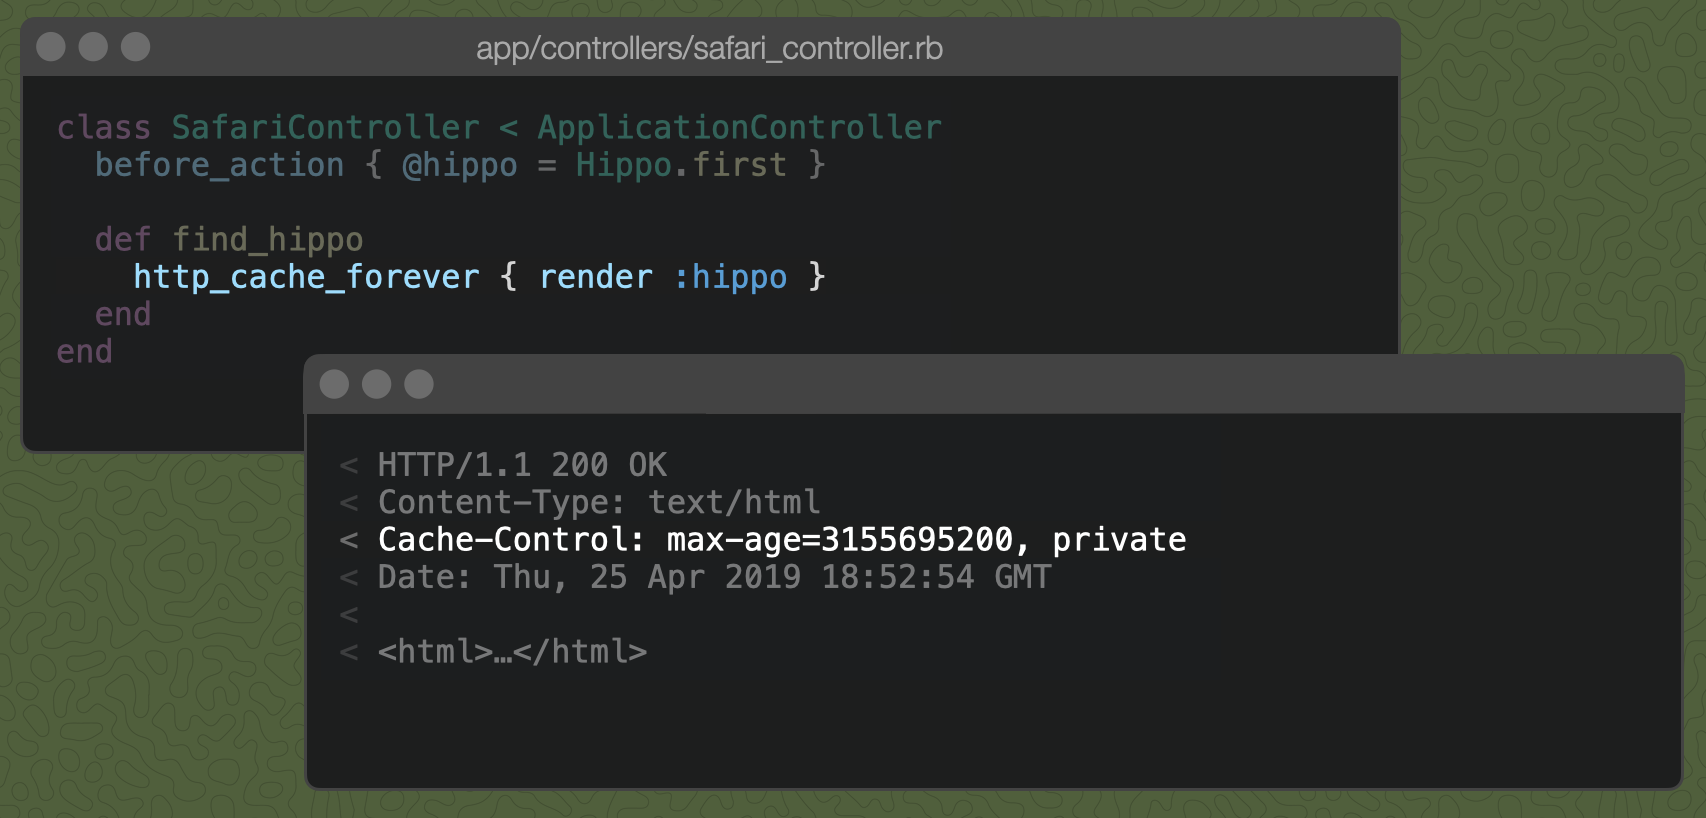 A Rails controller action with `http_cache_forever { render :hippo }` and the resulting `Cache-Control` header, described below.